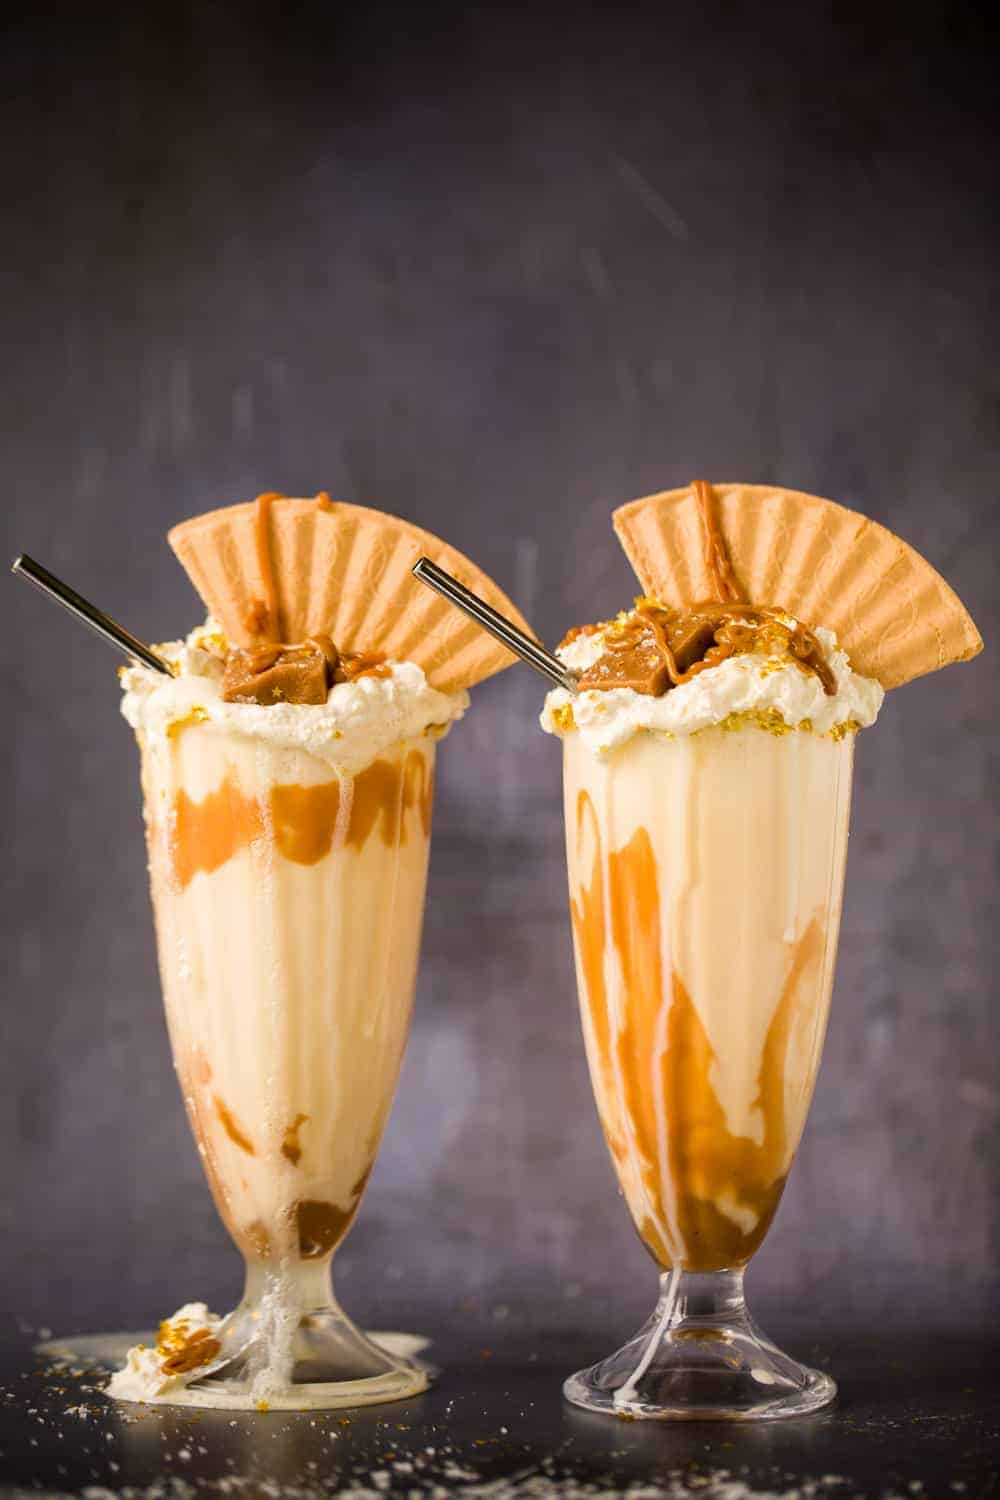 Two tall glasses filled with salted caramel milkshake. The glasses are topped with whipped cream, a wafer and pieces of salted caramel fudge.